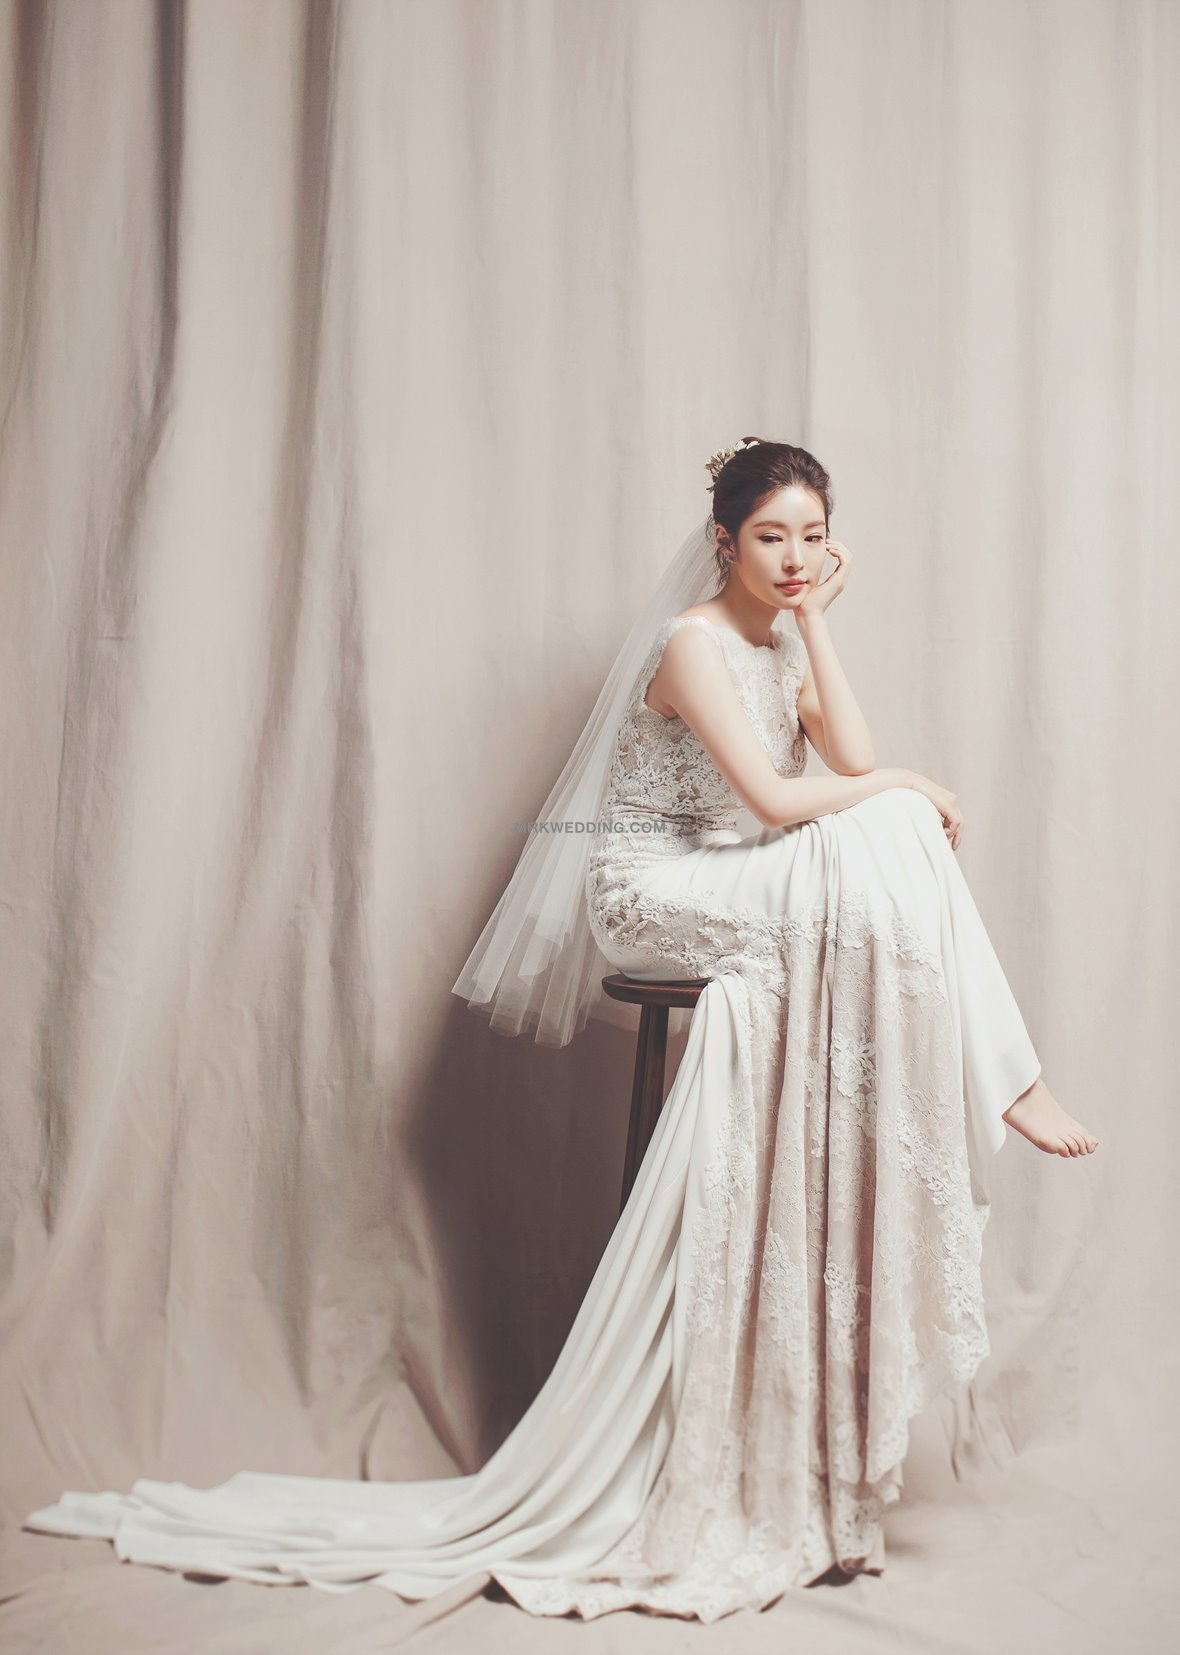 #koreaprewedding (10).jpg